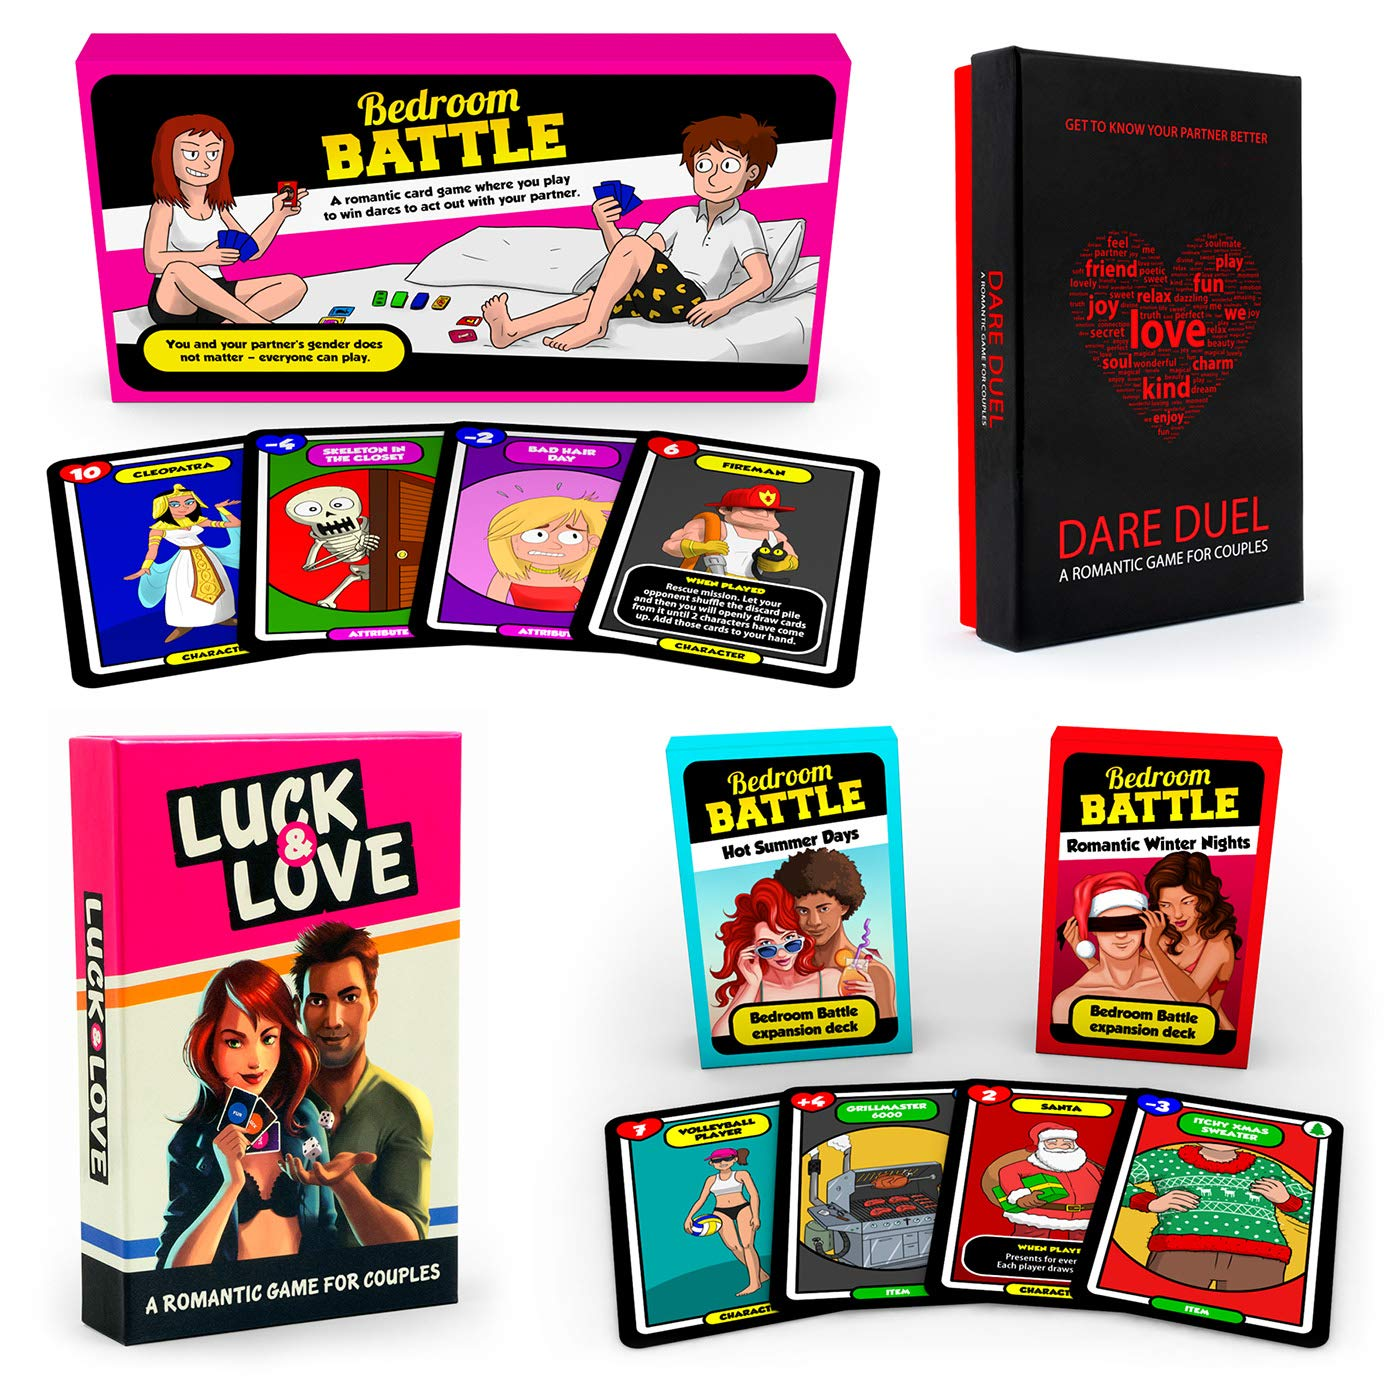 Big Bundle of Love - The Gift Box Full of Romantic Games for Couples